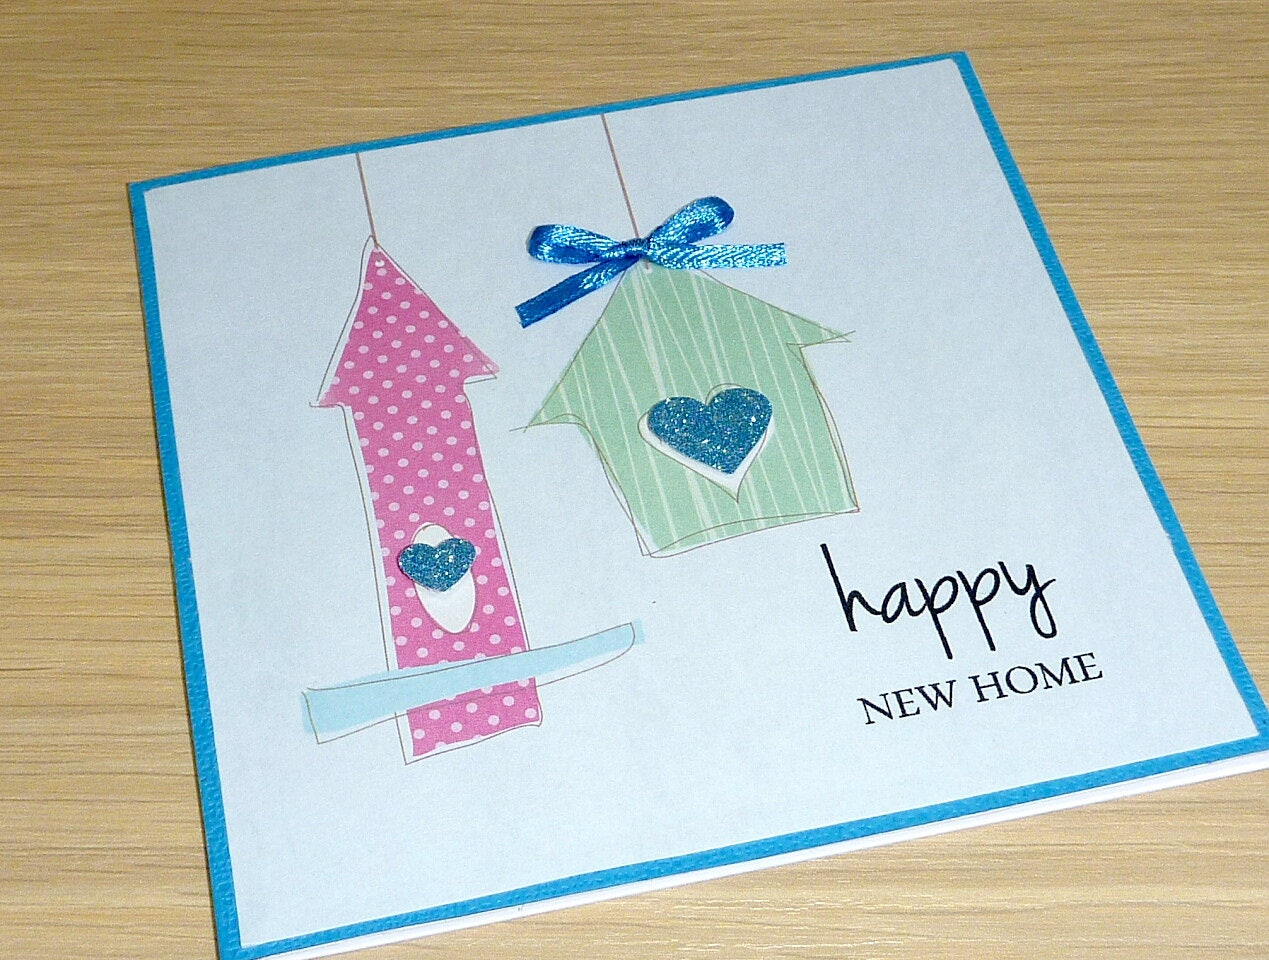 New house house warming moving card handmade greeting zoom kristyandbryce Gallery